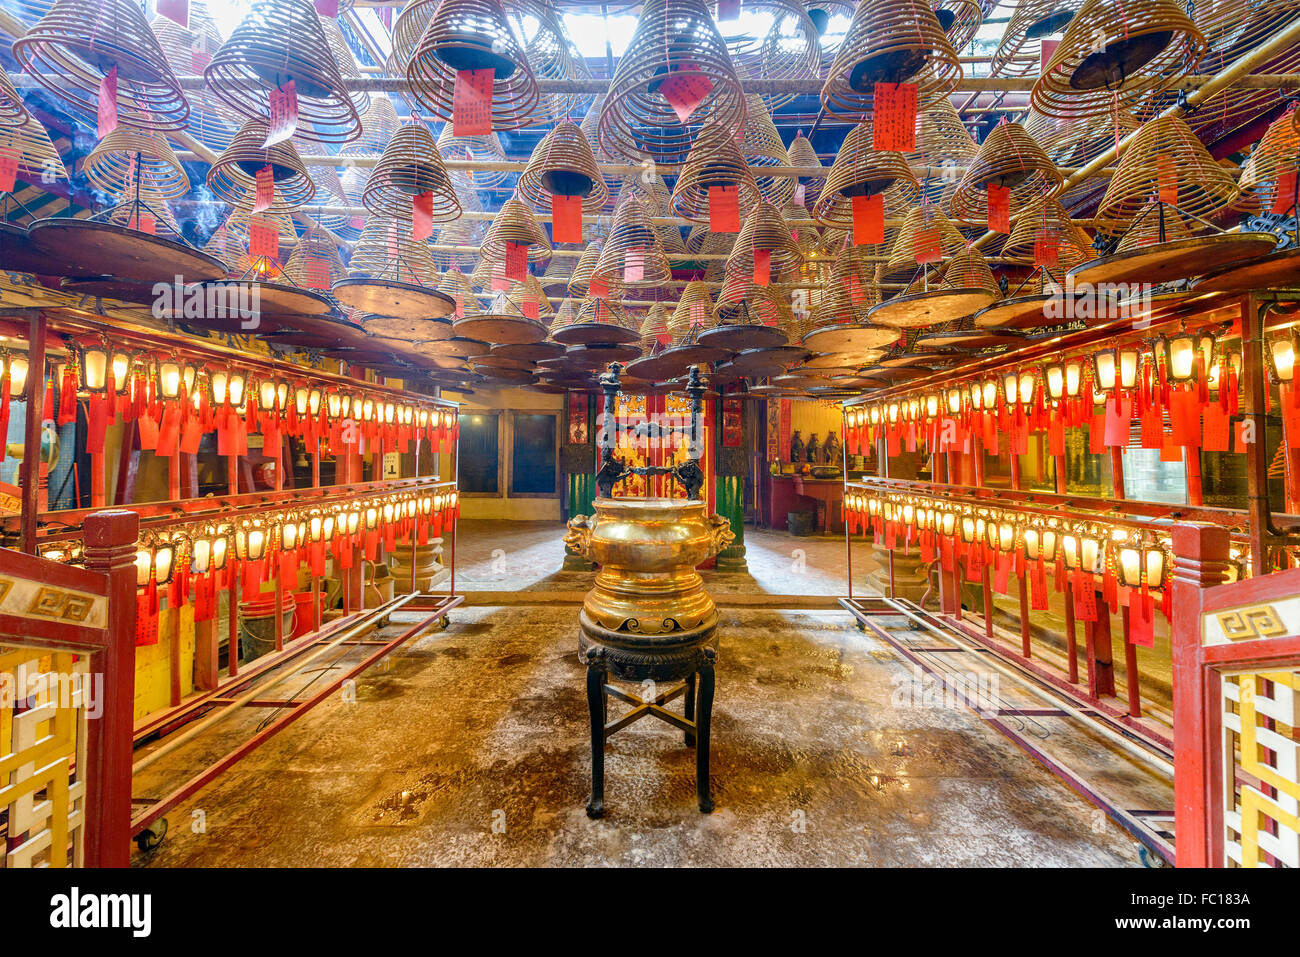 The interior of Man Mo Temple in Hong Kong, China. - Stock Image